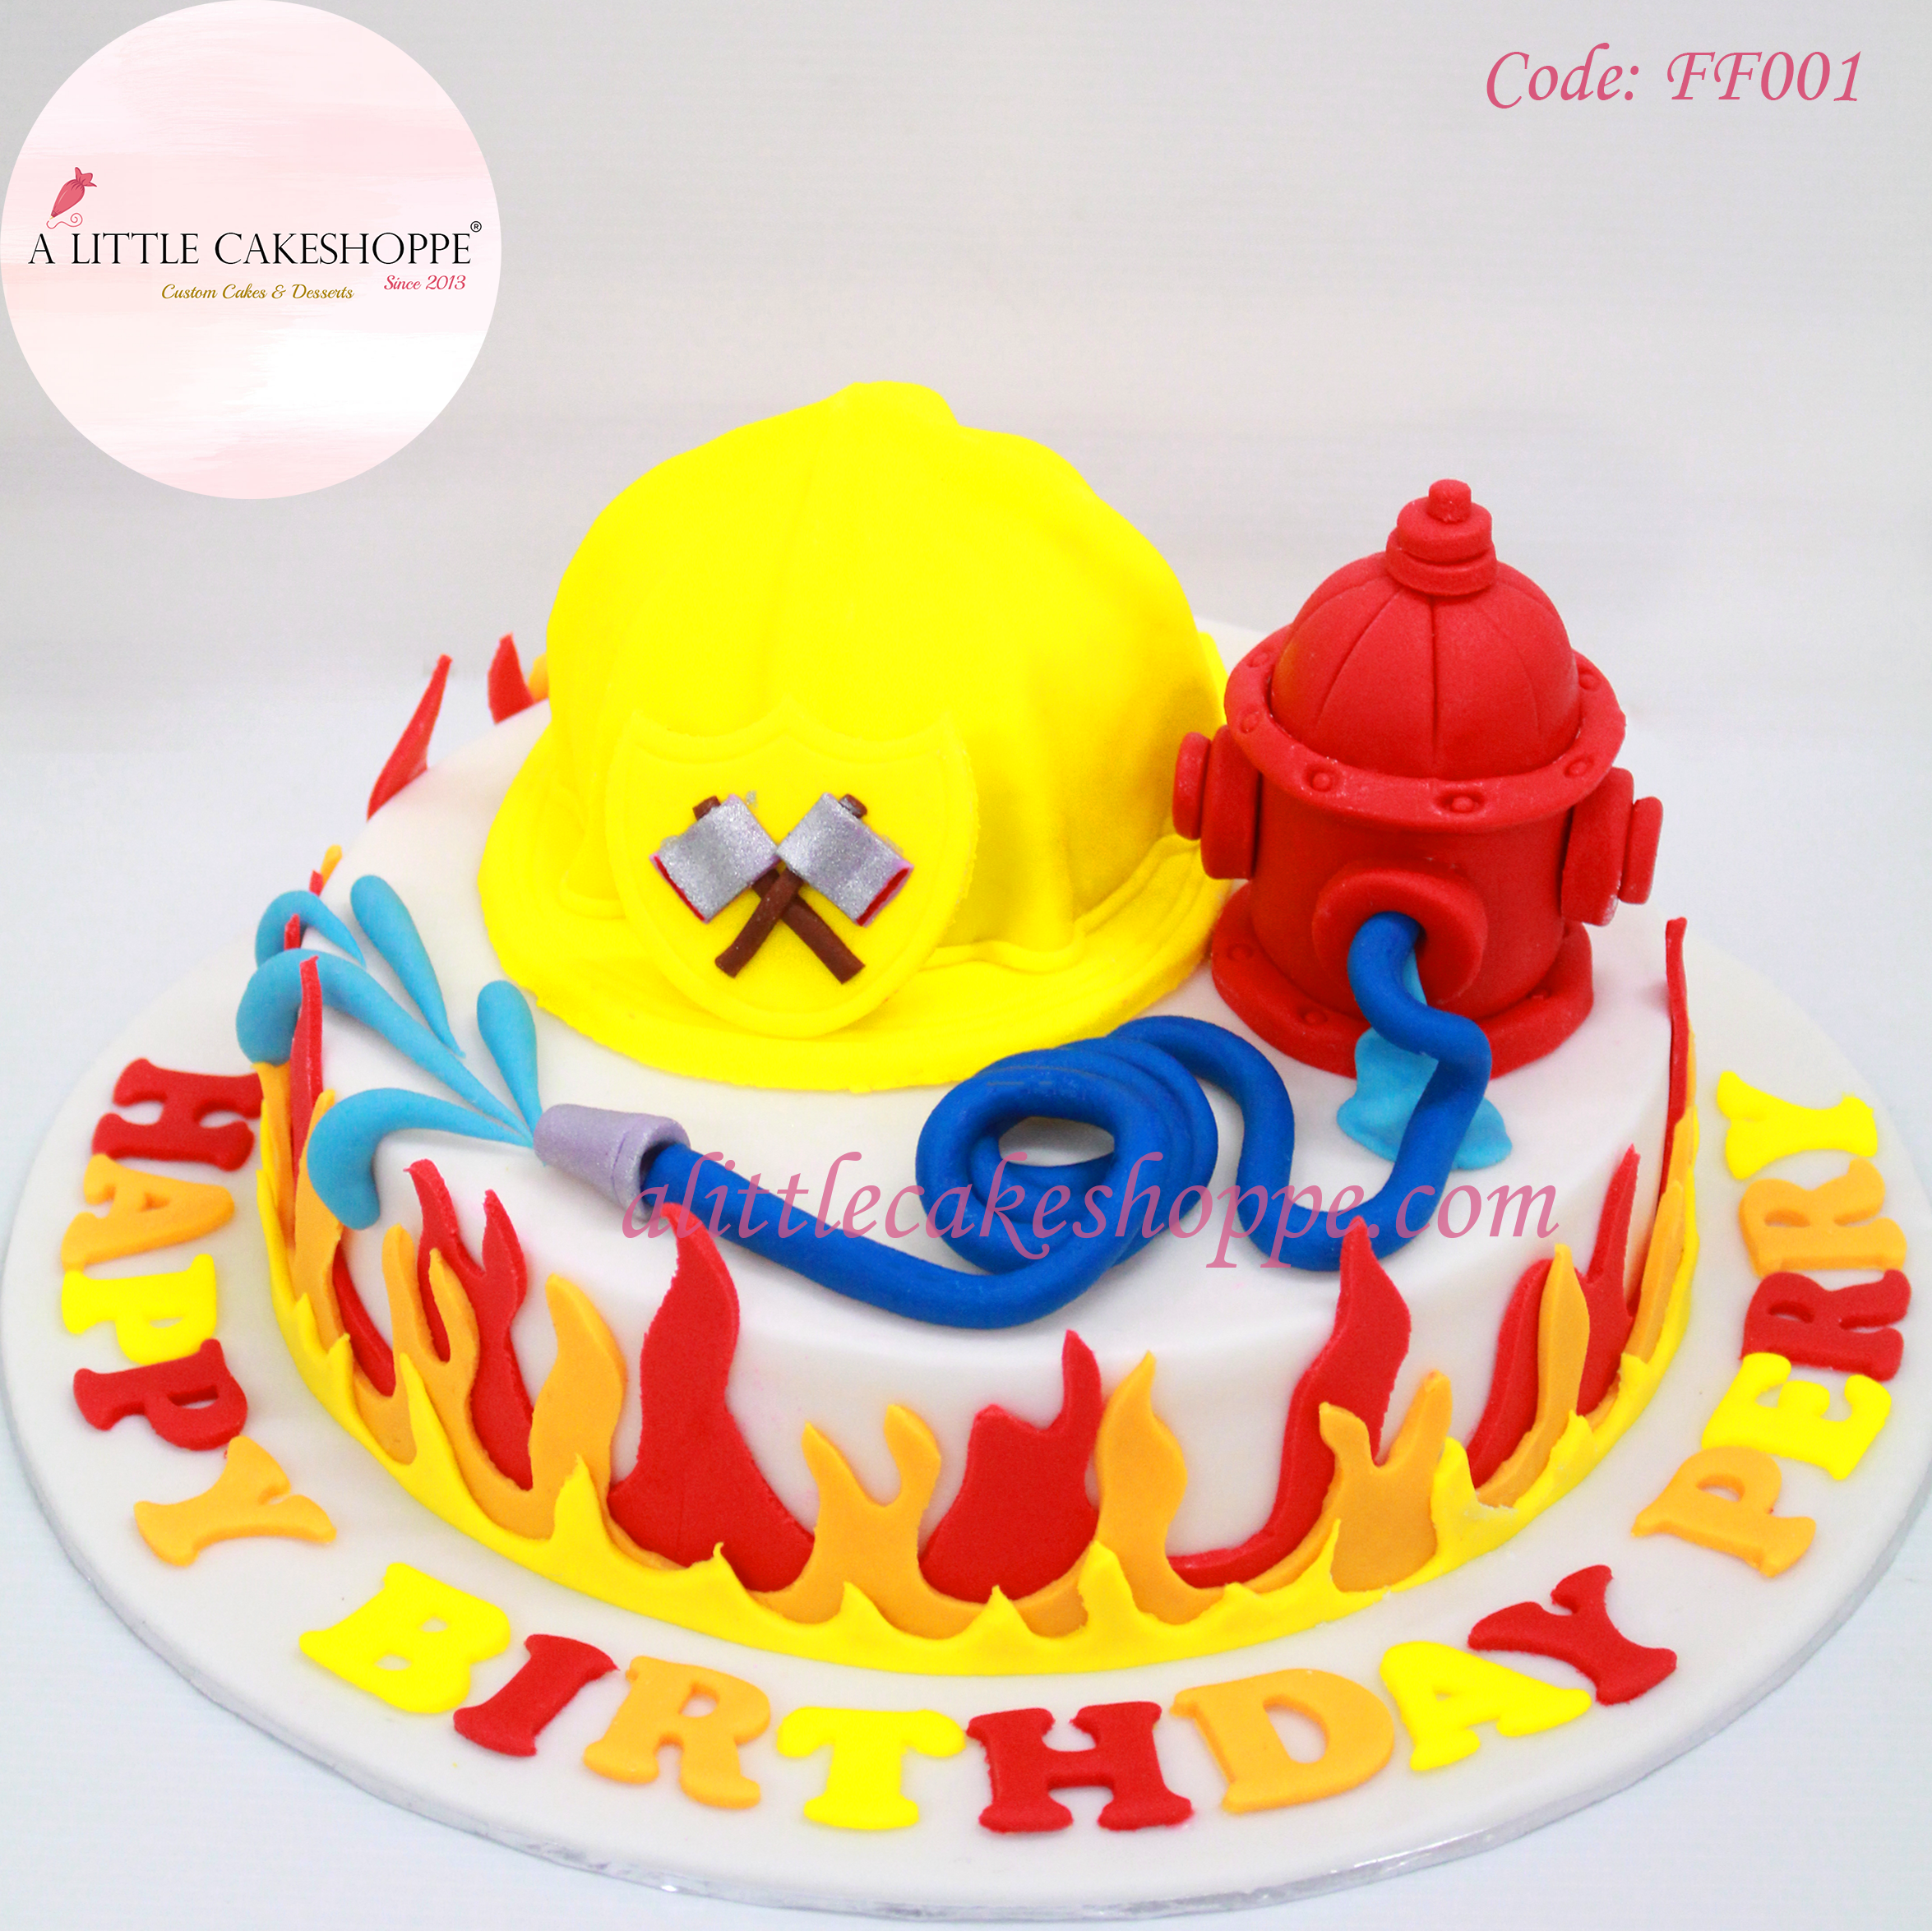 Best Customised Cake Shop Singapore custom cake 2D 3D birthday cake cupcakes desserts wedding corporate events anniversary 1st birthday 21st birthday fondant fresh cream buttercream cakes alittlecakeshoppe a little cake shoppe compliments review singapore bakers SG cake shop cakeshop ah beng who bakes fireman